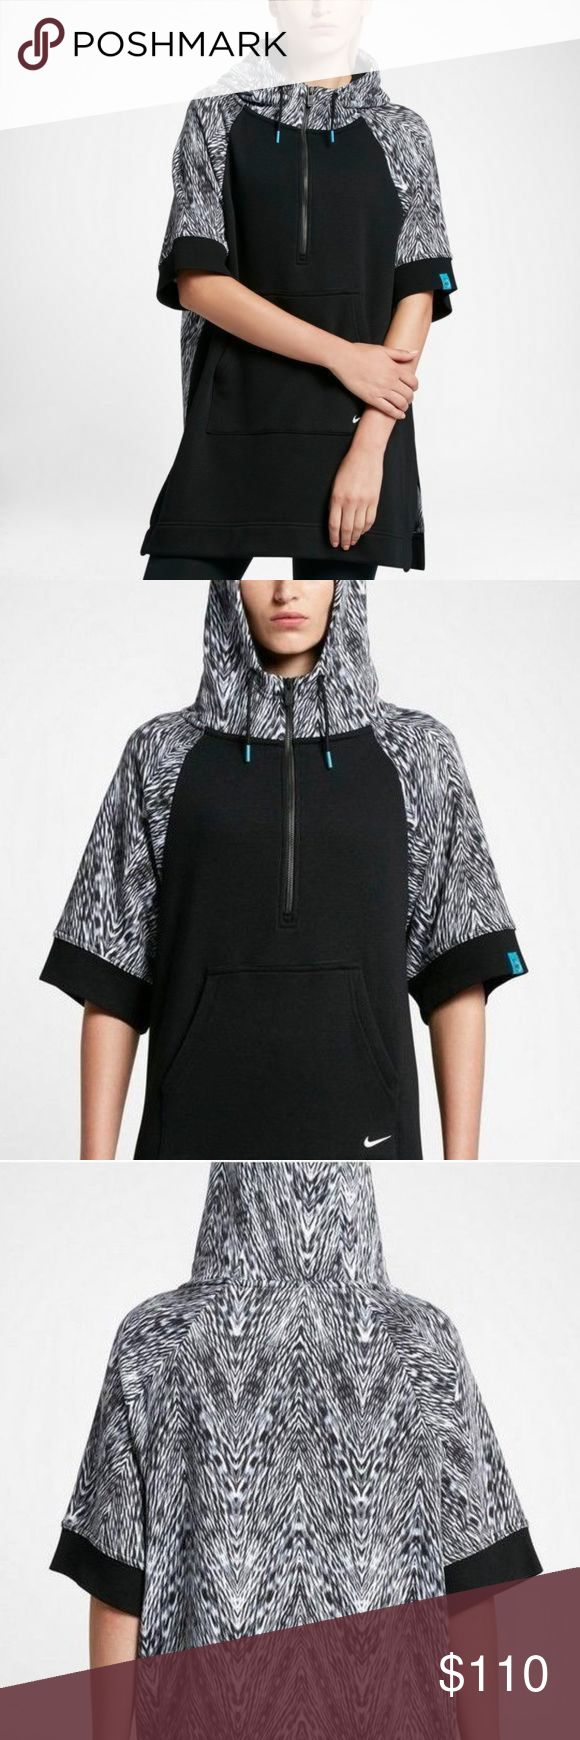 """NWT Women's Nike N7 Poncho Hoodie Size Medium NWT Women's Nike N7 Poncho Hoodie Size Medium   Measurements:  Bust:  Up to 24"""" Flat across (dolman style top, designed to fit loose) Length:  34"""" long. Nike Sweaters Shrugs & Ponchos"""